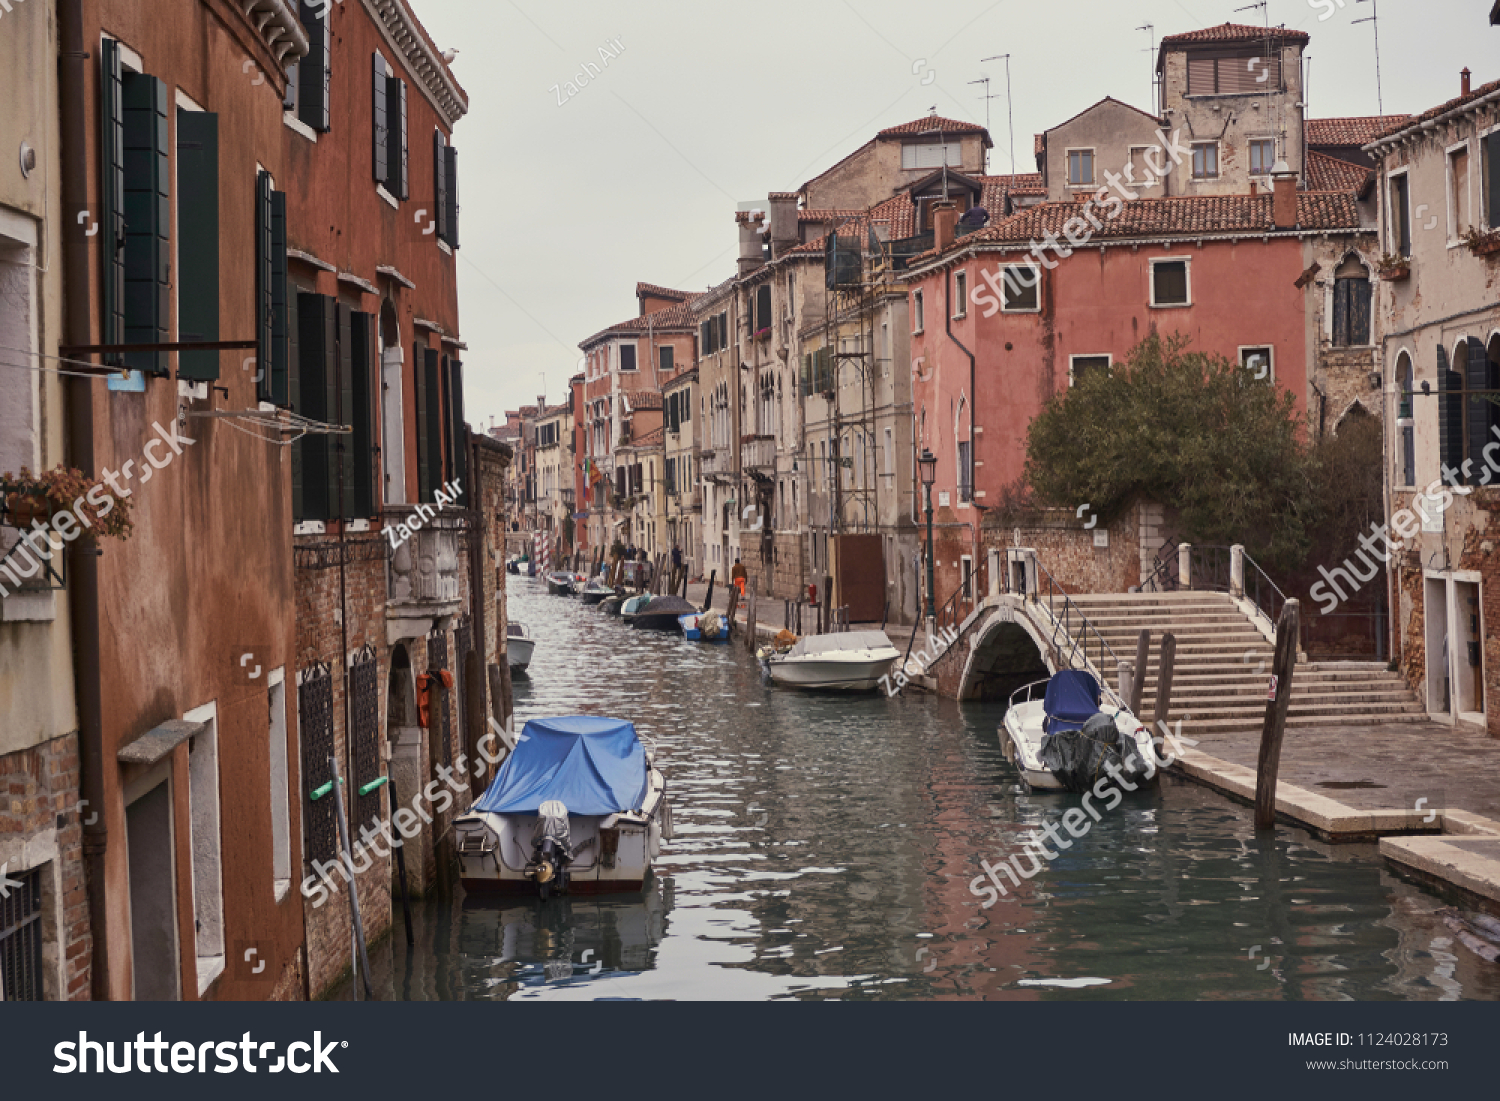 Venice Venedig Venice Venedig Boat Canal City Stock Photo Edit Now 1124028173